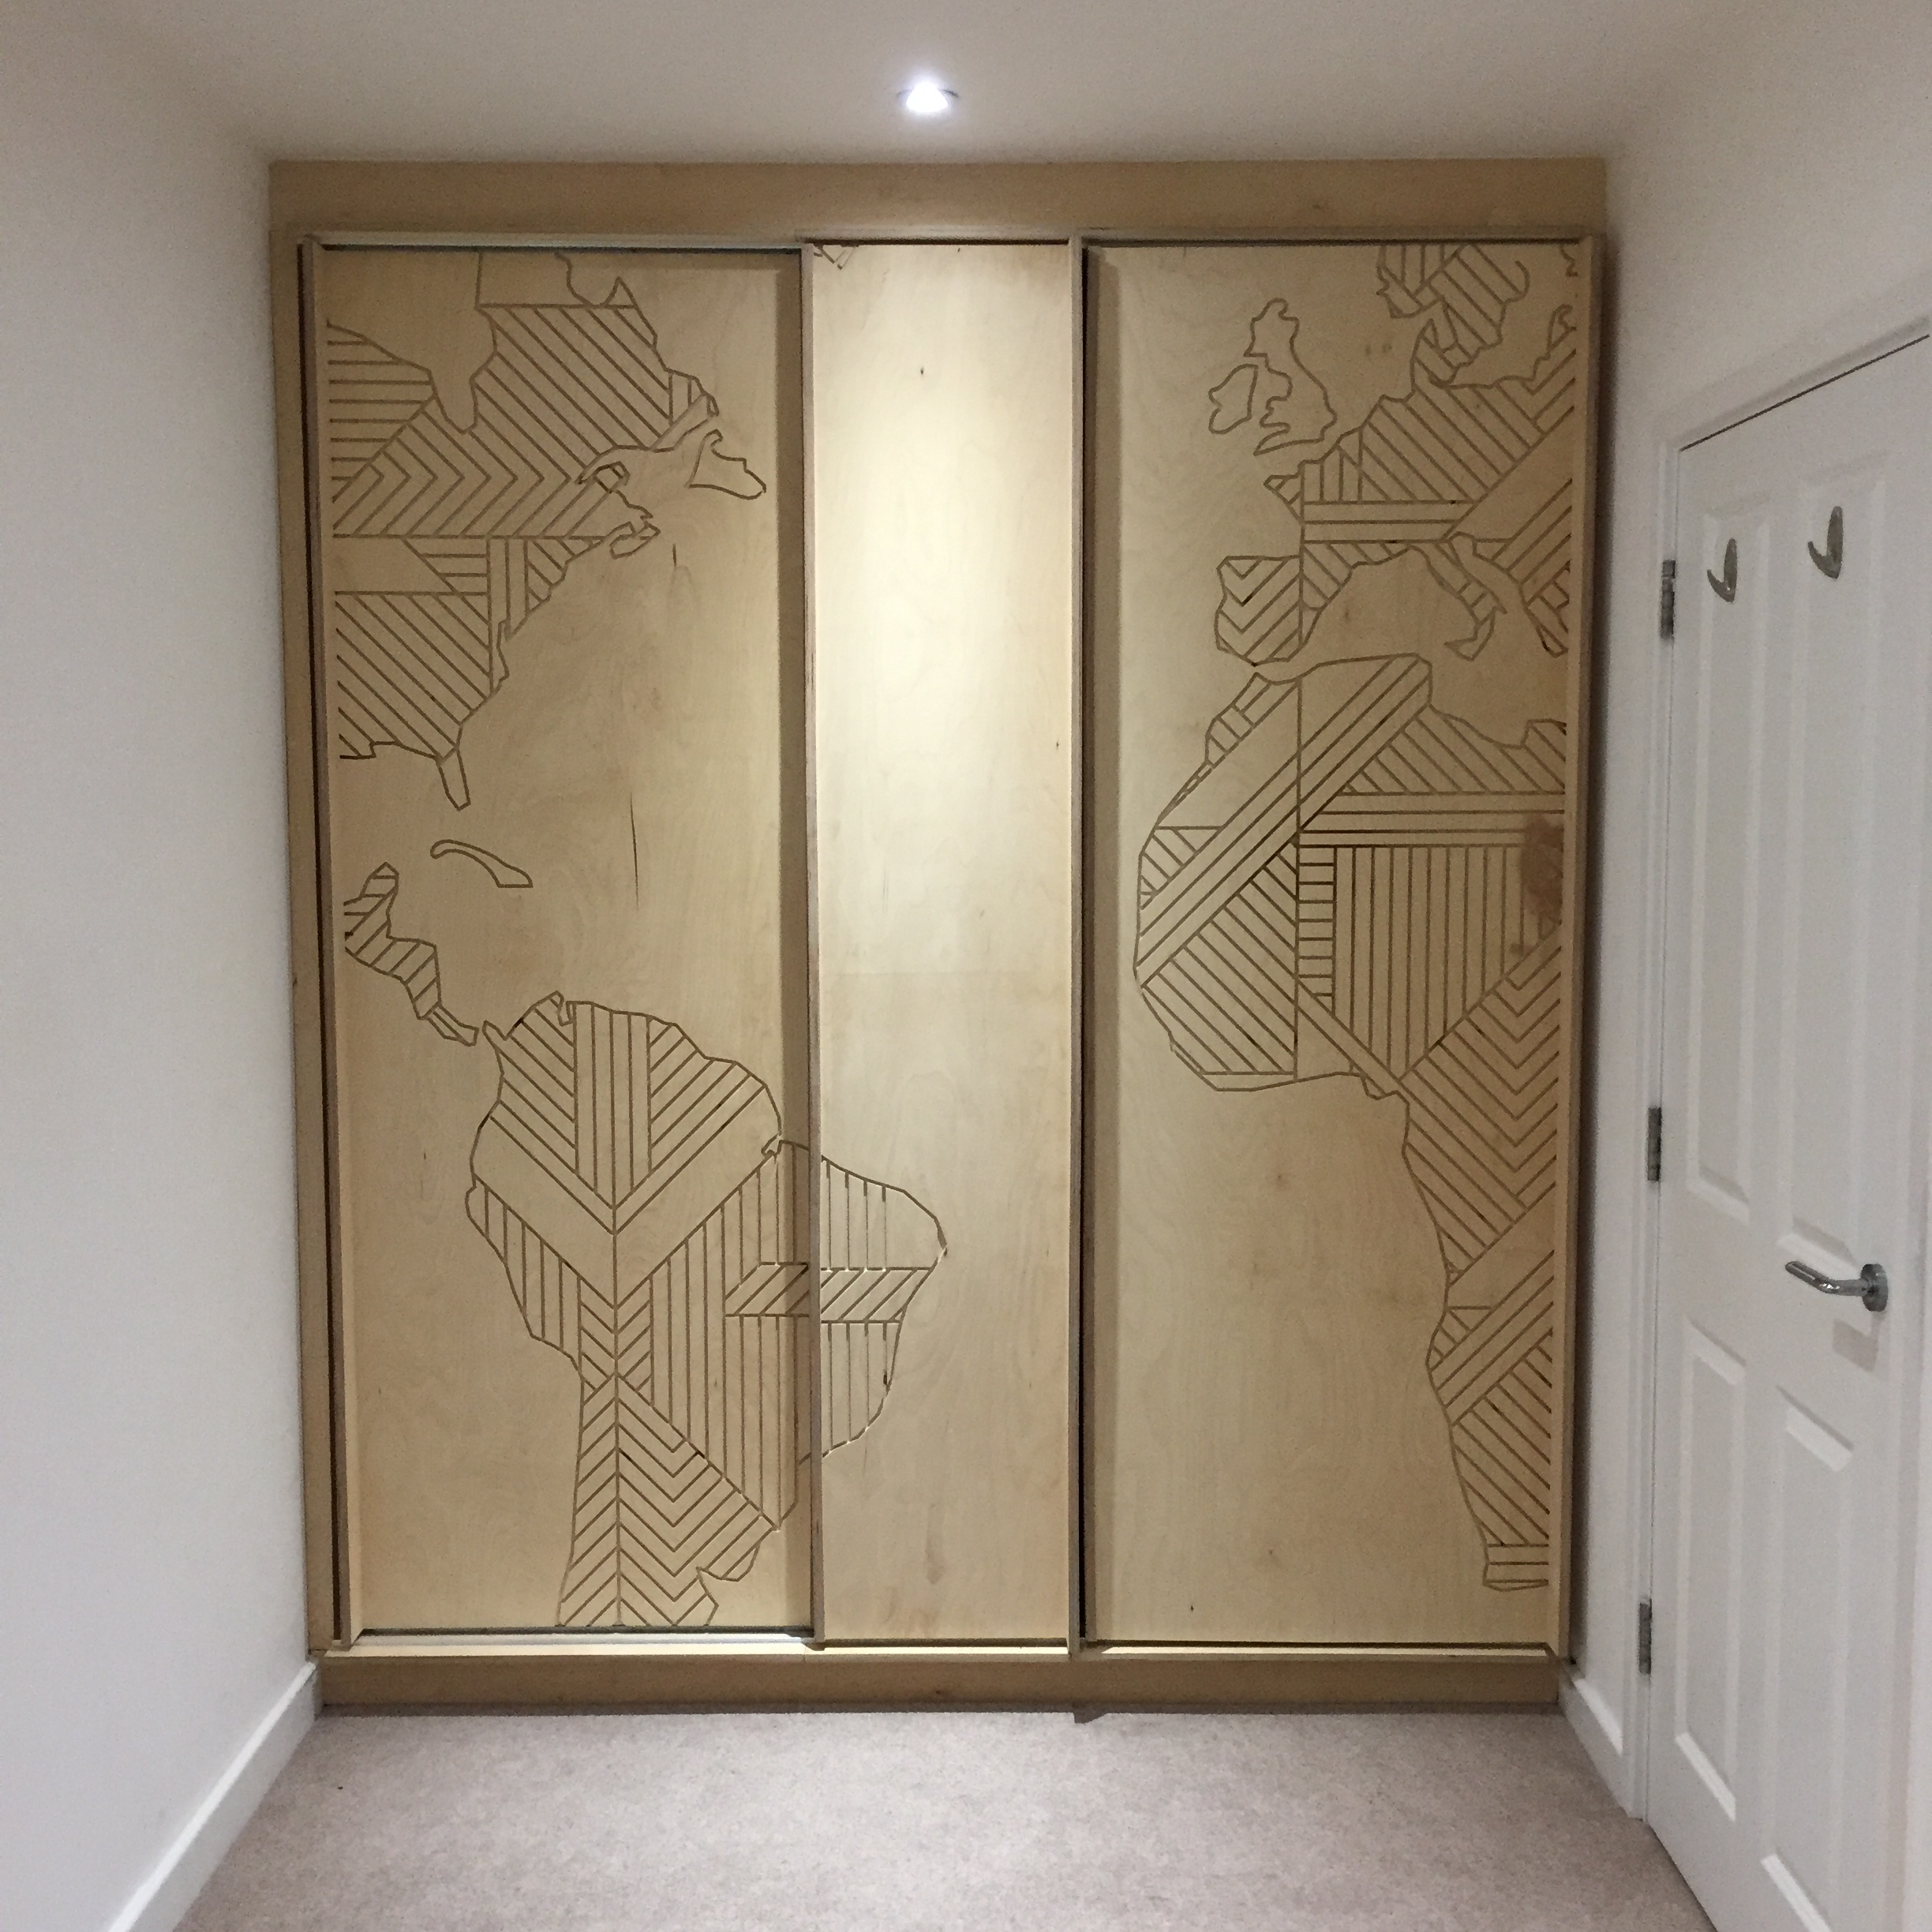 MIIAN wardrobe - Bespoke fitted wardrobe with sliding doors